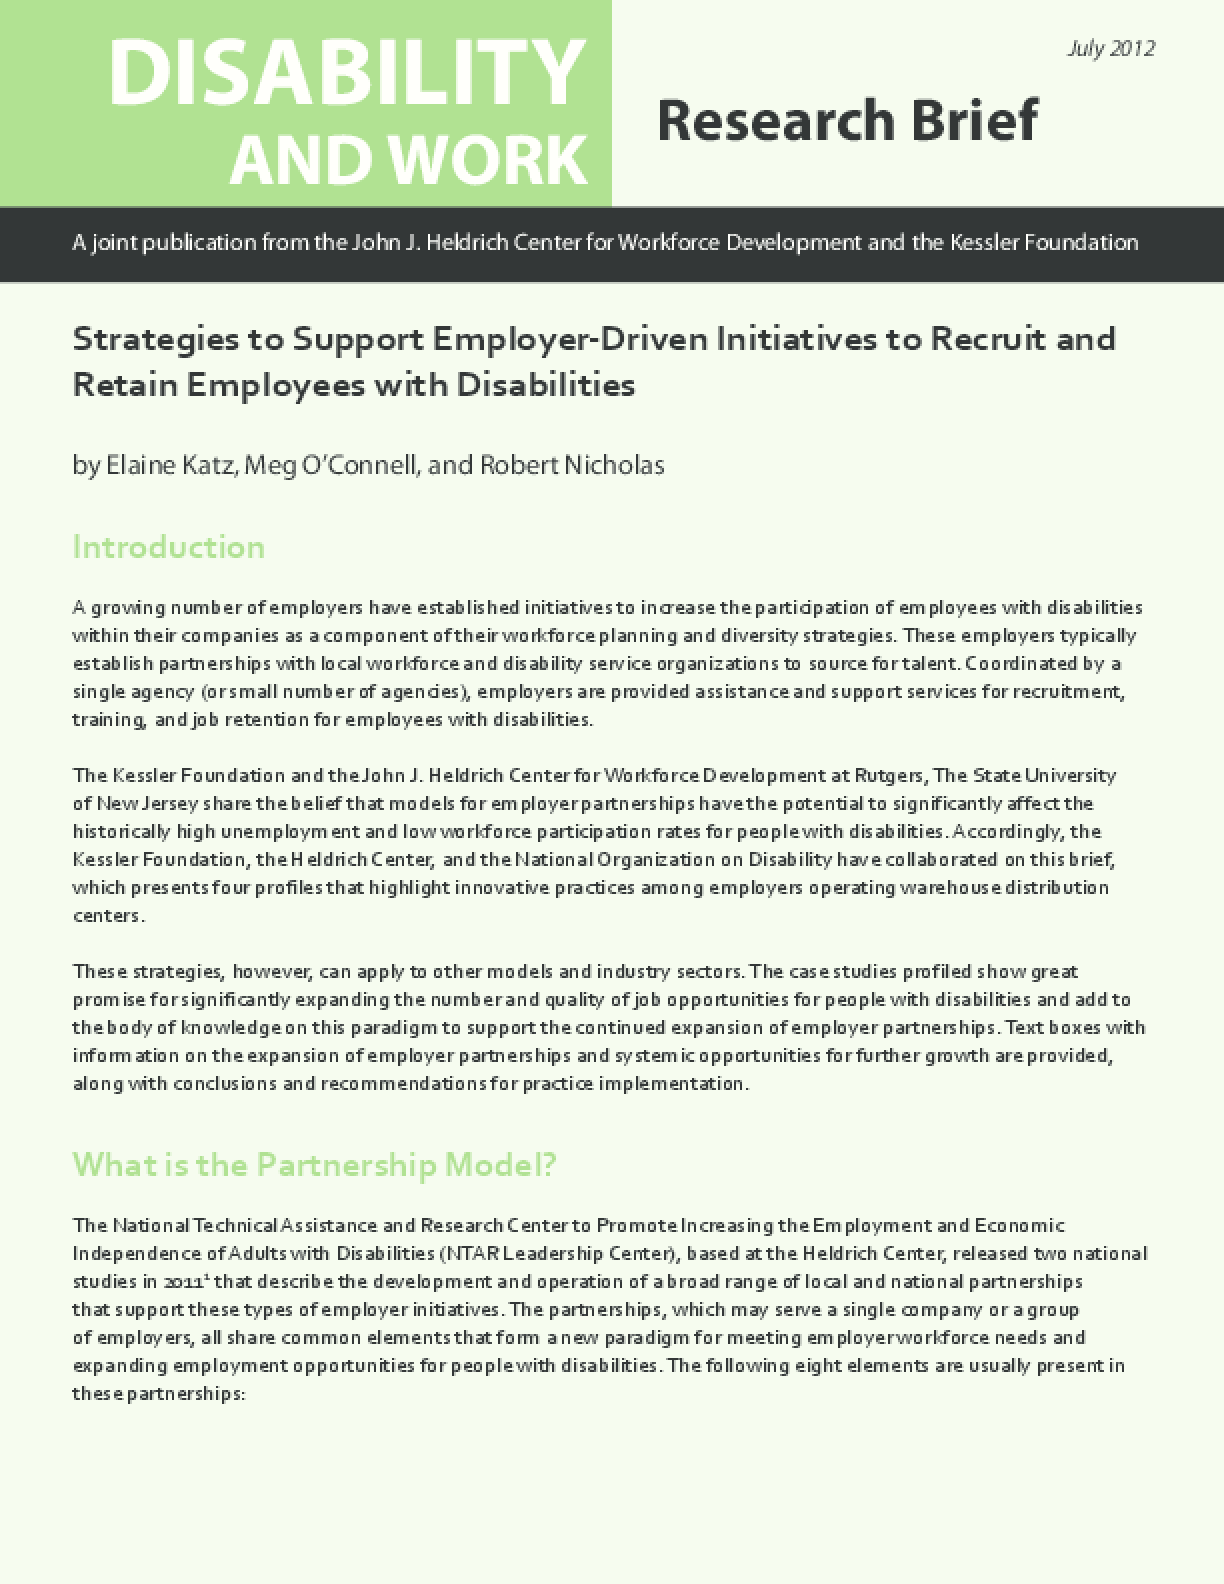 Strategies to Support Employer-Driven Initiatives to Recruit and Retain Employees with Disabilities